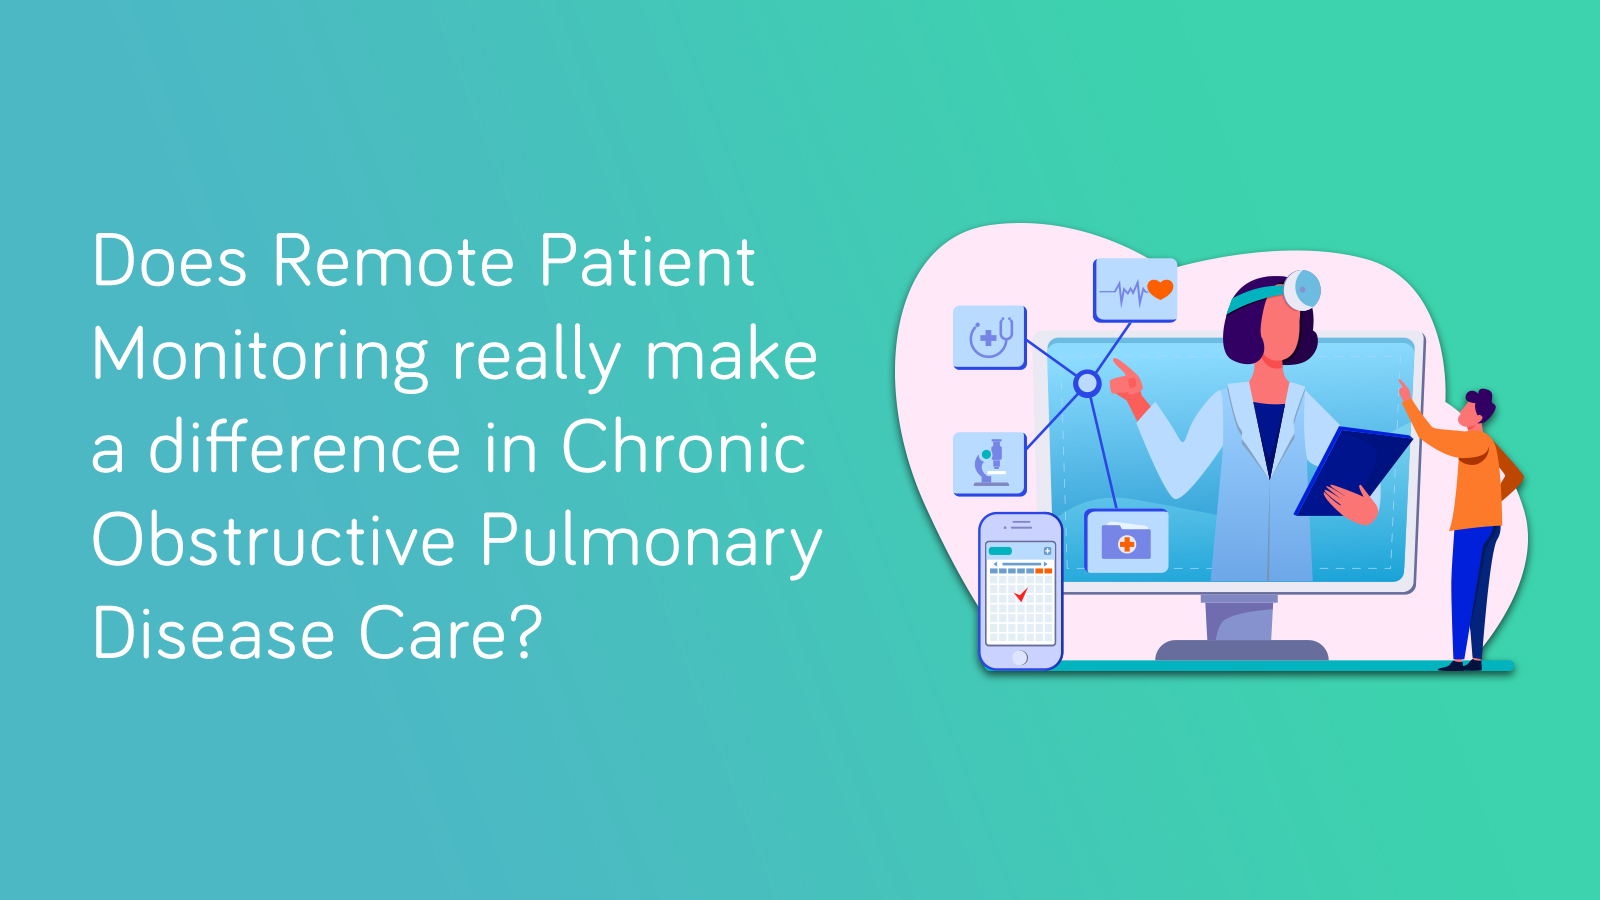 remote-patient-monitoring-for-chronic-obstructive-pulmonary-disease